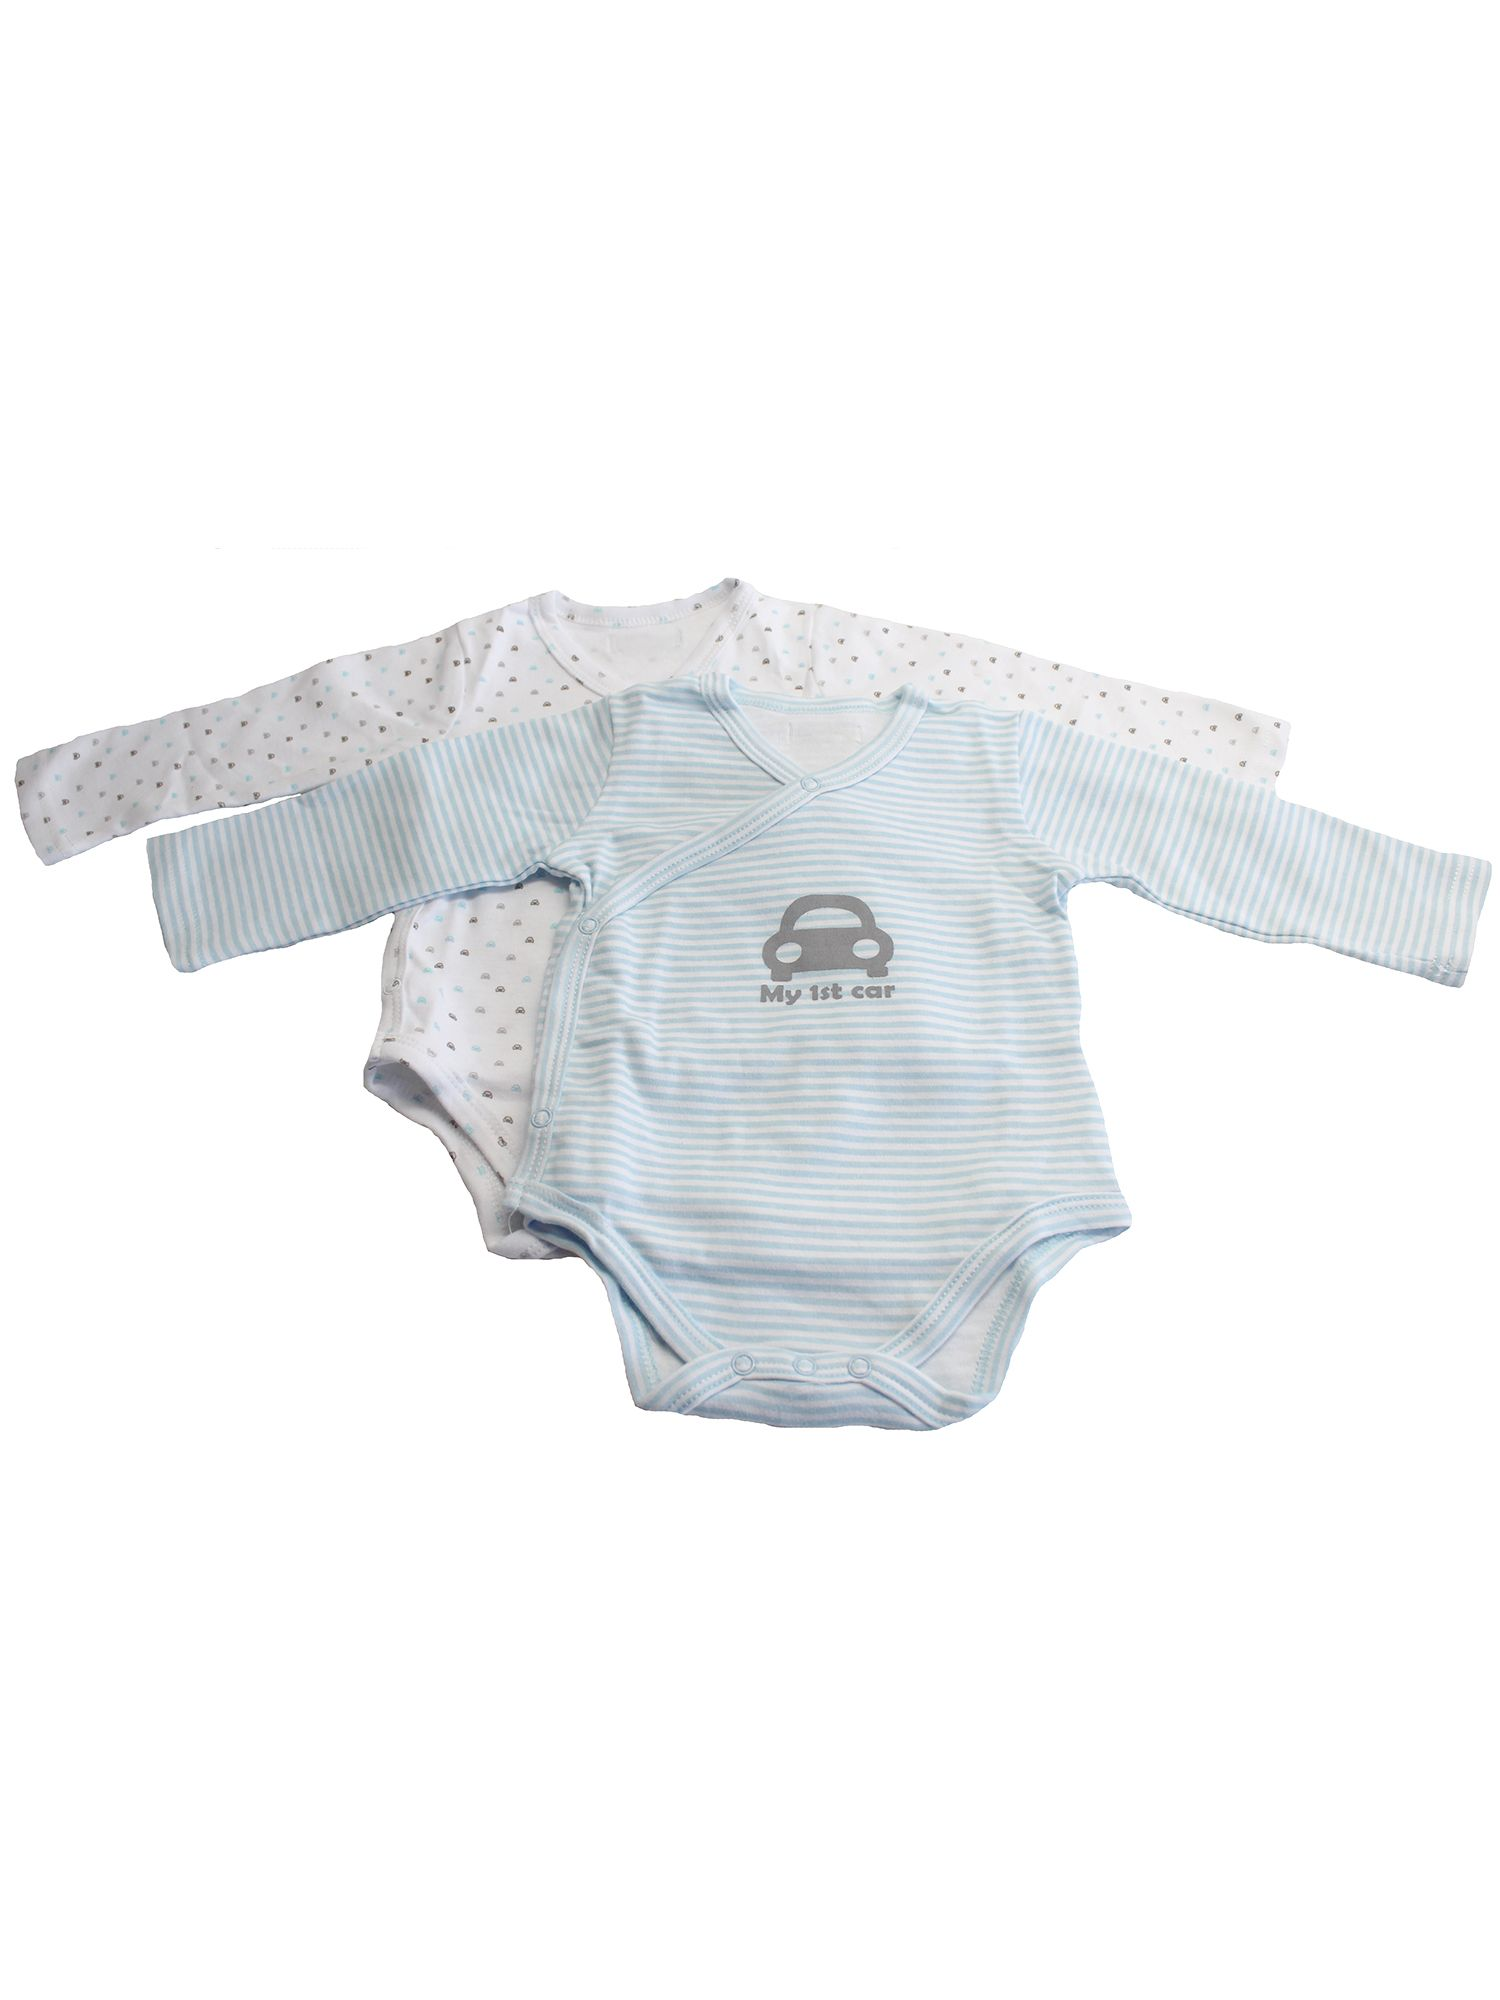 Boys wraparound bodysuit set - cars